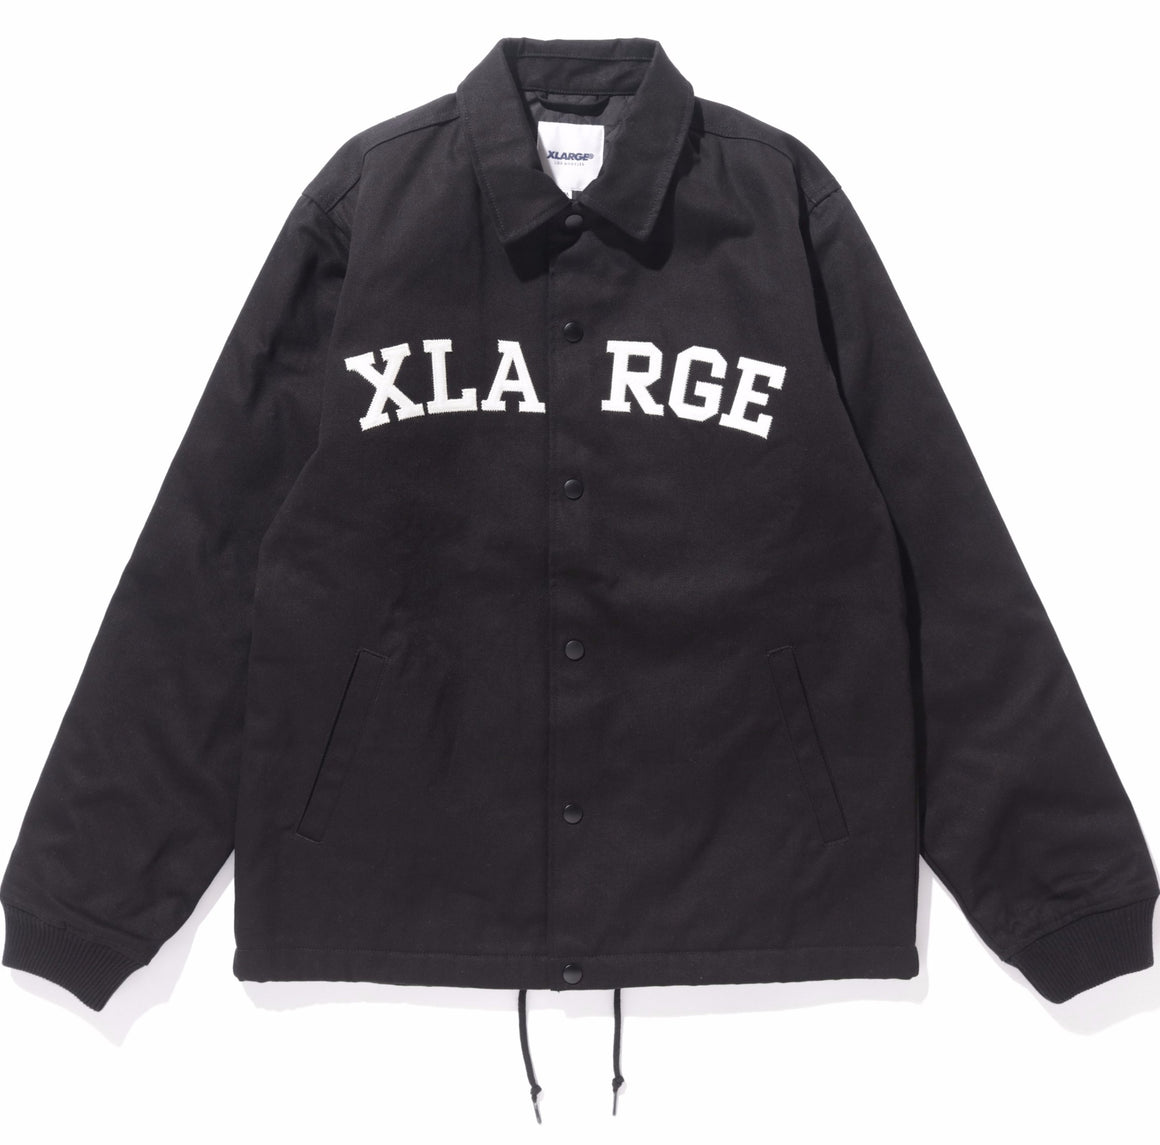 HEAVY OX TEAM JACKET JACKET & SPORTSWEAR XLARGE